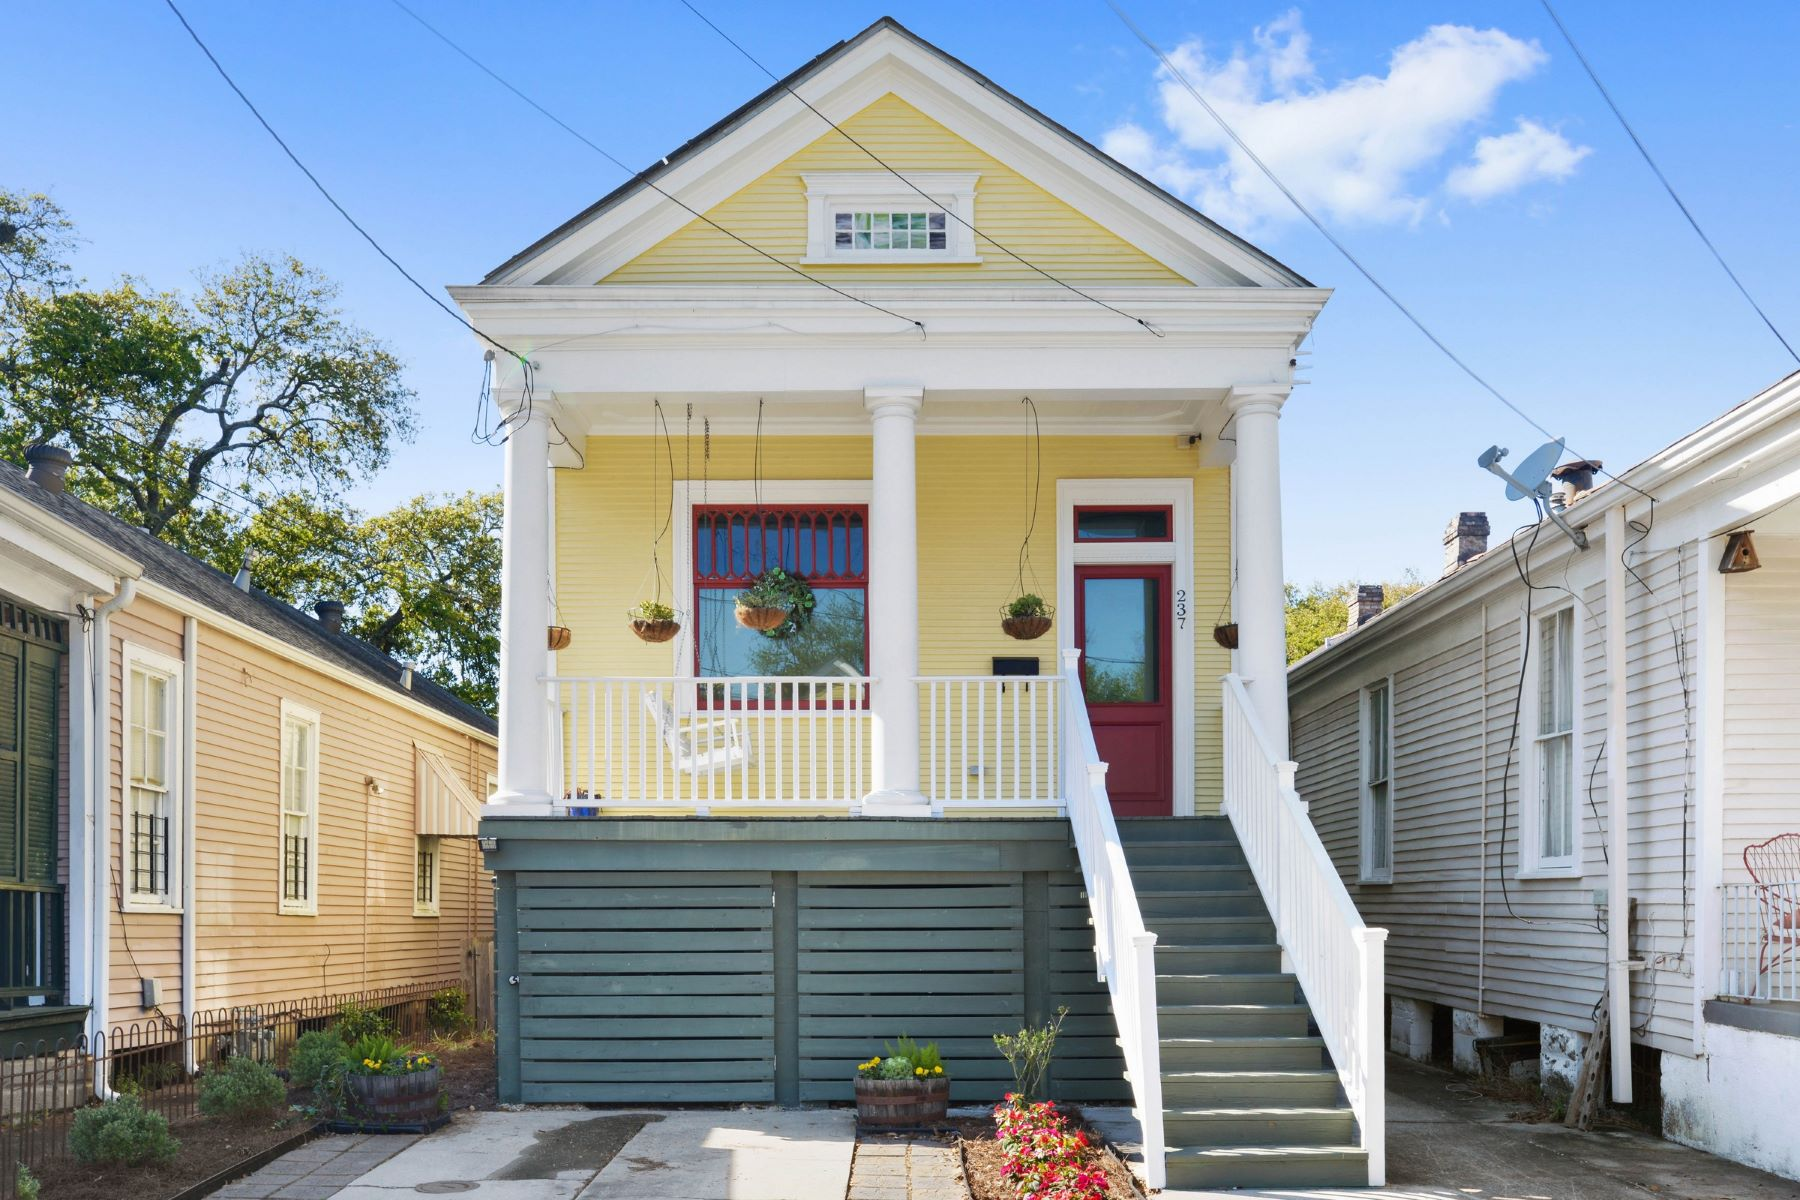 Single Family Home for Sale at 237 S Solomon St 237 S Solomon St New Orleans, Louisiana 70119 United States